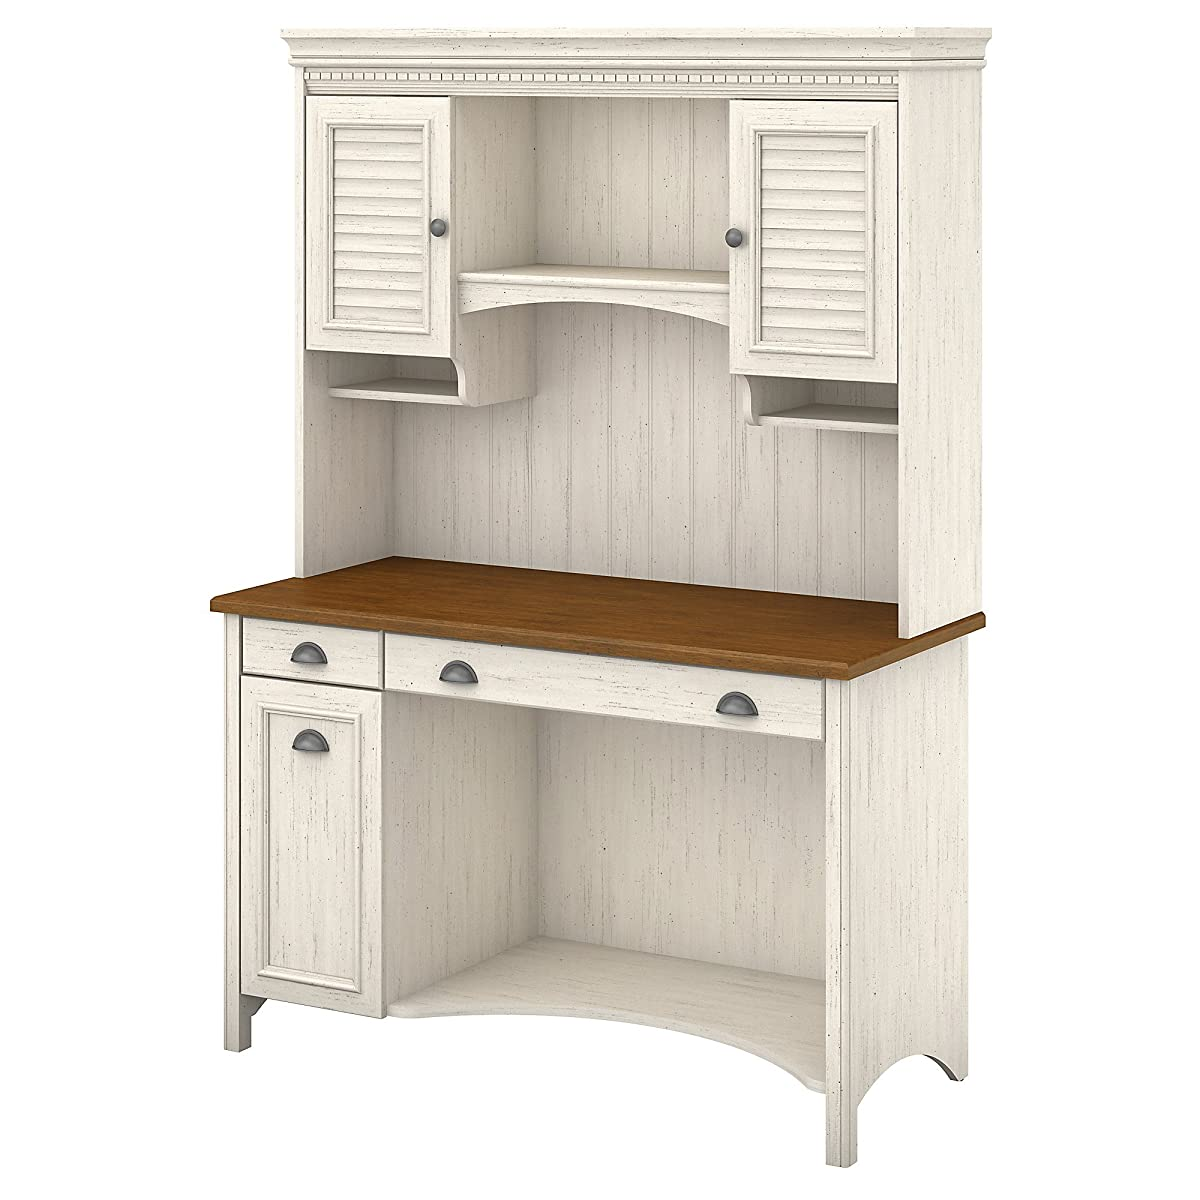 Bush Furniture Stanford Computer Desk with Hutch and Drawers in Antique White